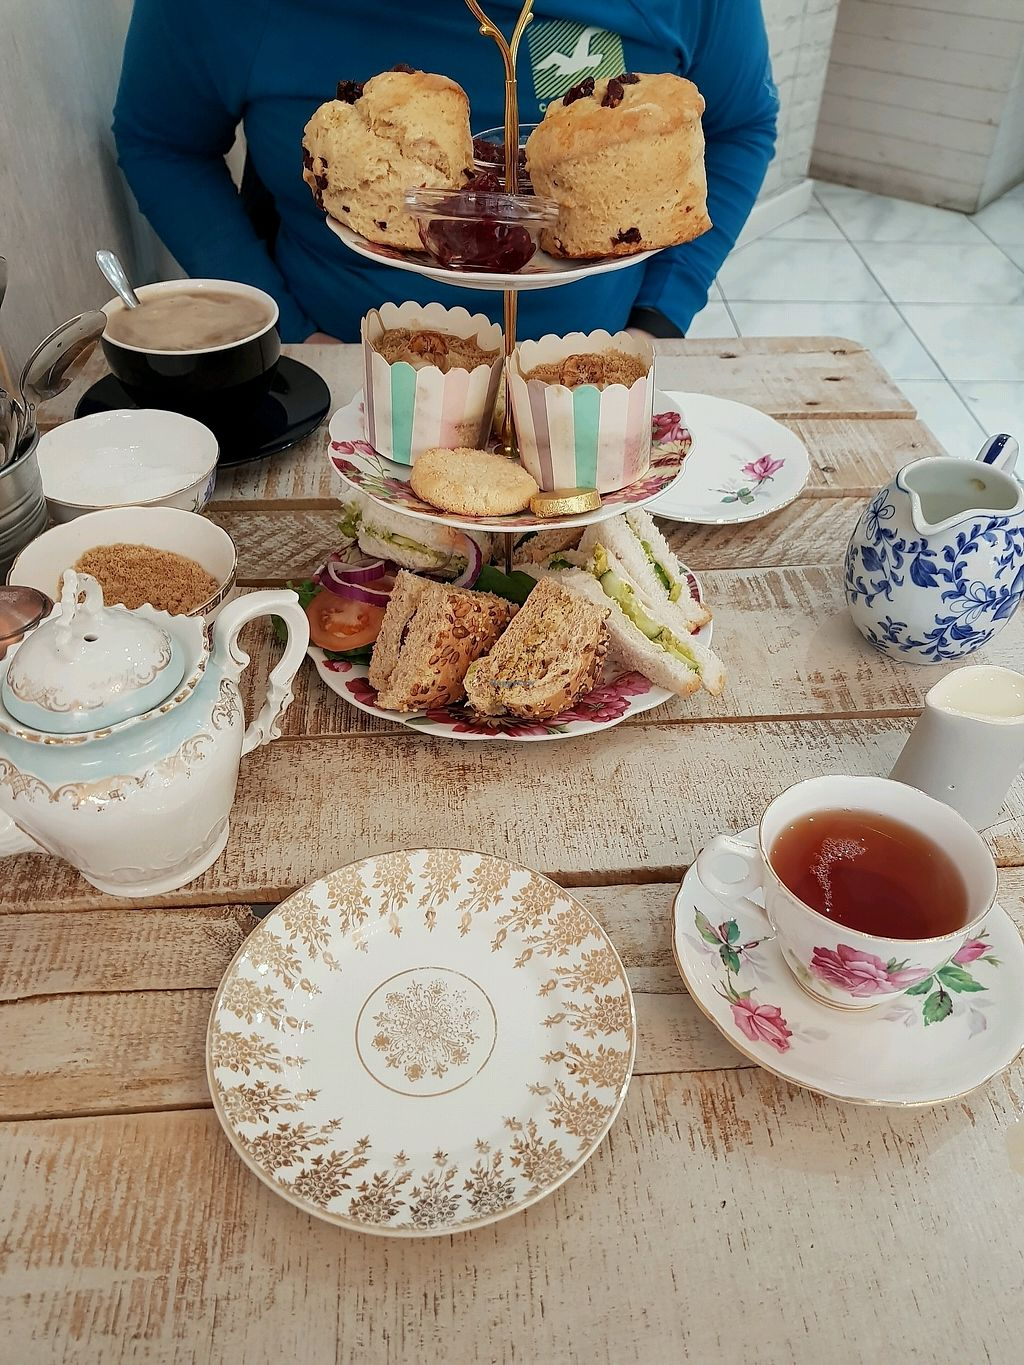 """Photo of Mr & Mrs C's  by <a href=""""/members/profile/JemmaGordon"""">JemmaGordon</a> <br/>vegan afternoon tea  <br/> March 18, 2018  - <a href='/contact/abuse/image/105416/372629'>Report</a>"""